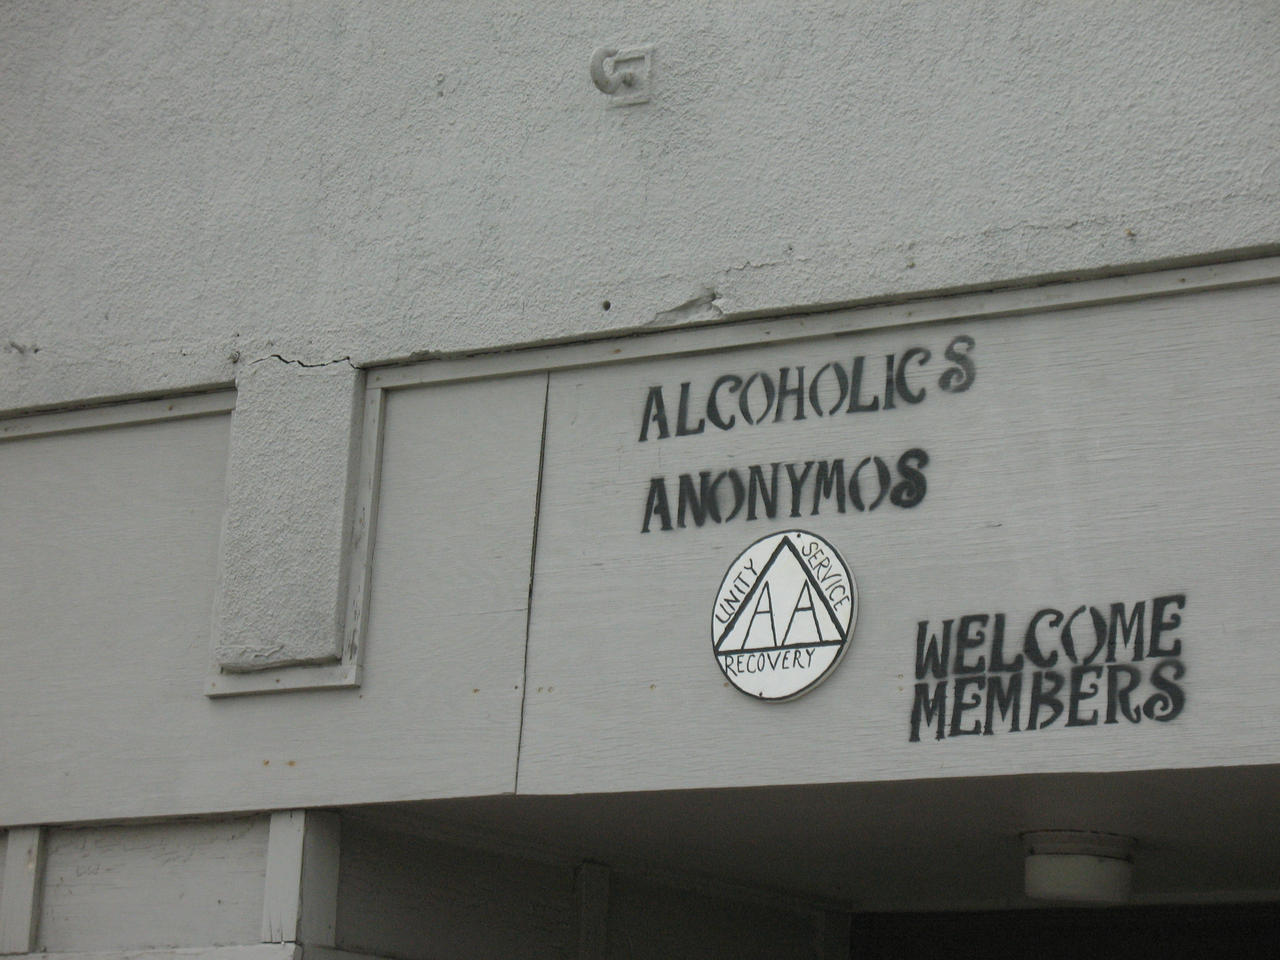 Dating within alcoholics anonymous